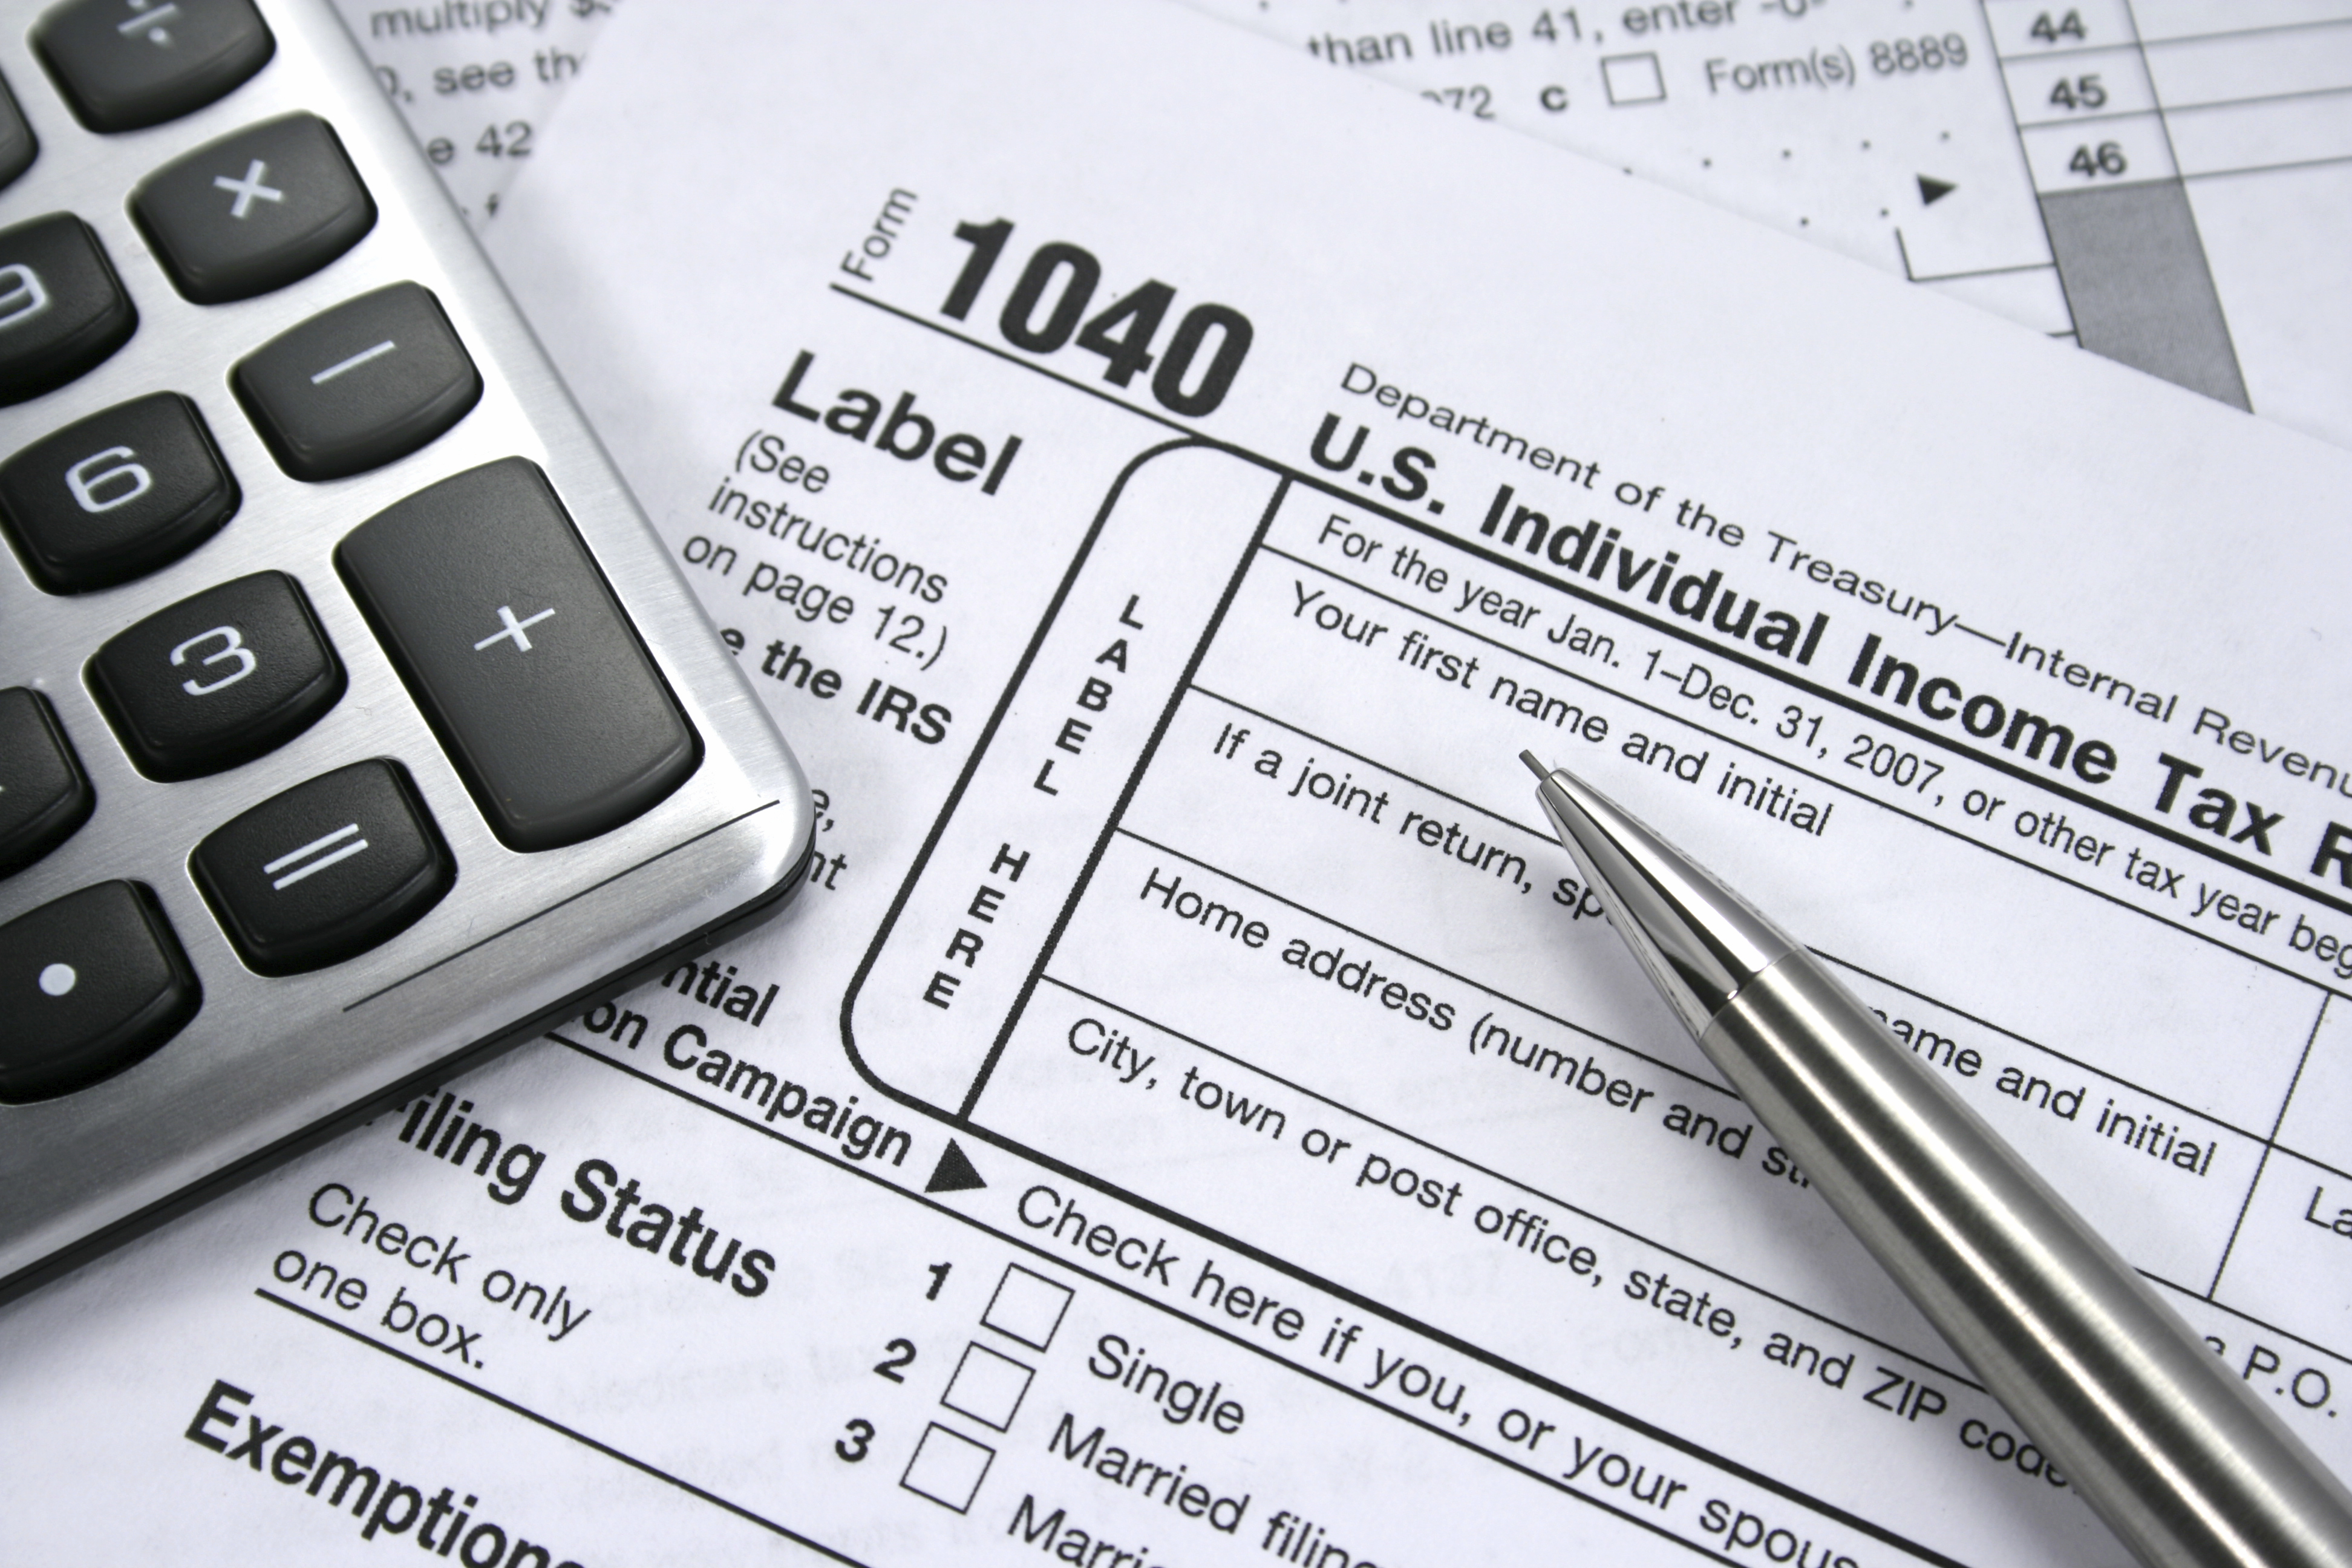 1040 central nycs top tax preparation directory form 1040 nyc new york city tax preparation falaconquin